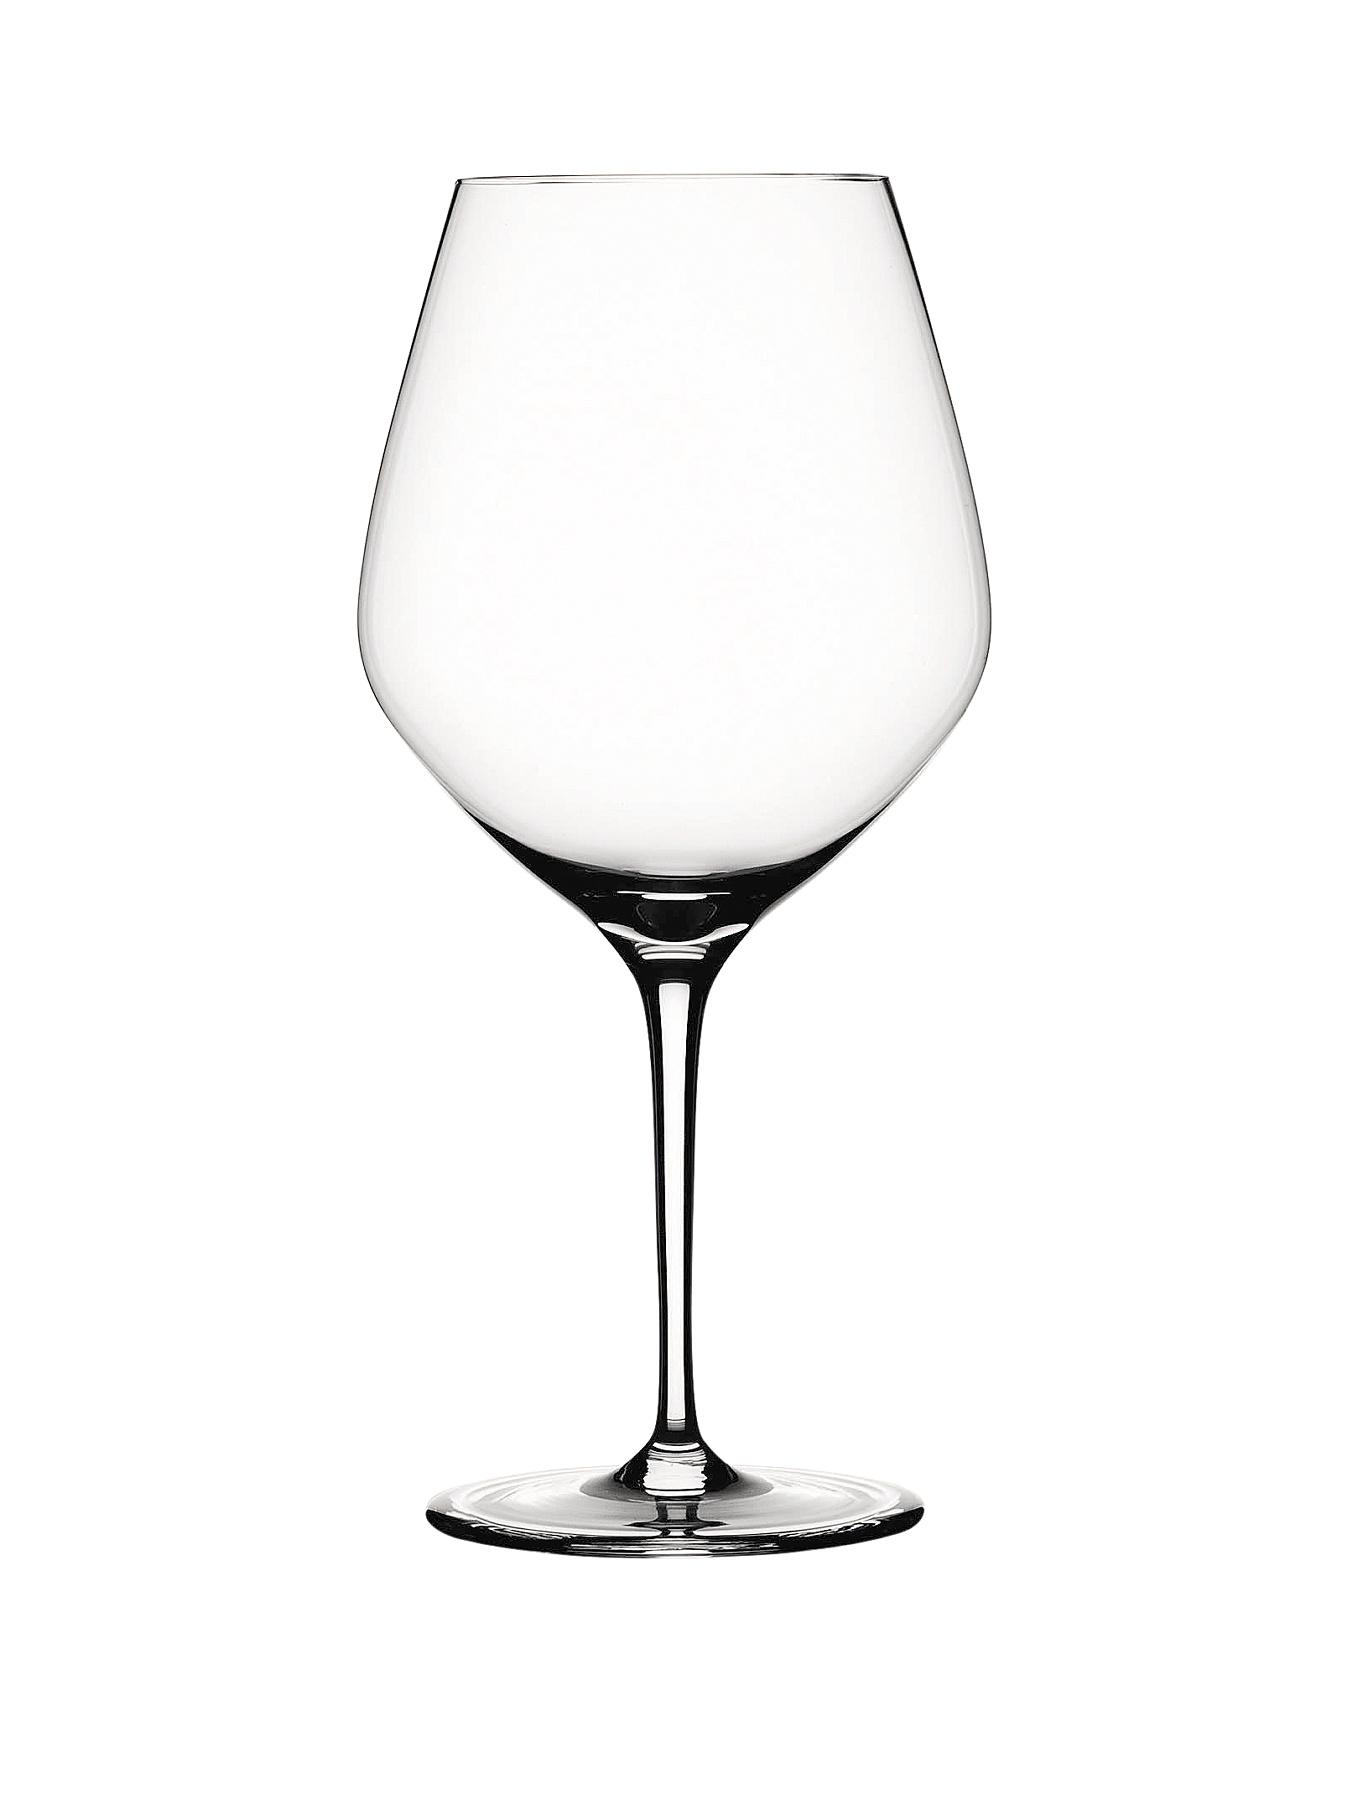 SPIEGELAU Authentis Burgundy Glass - Set of 2